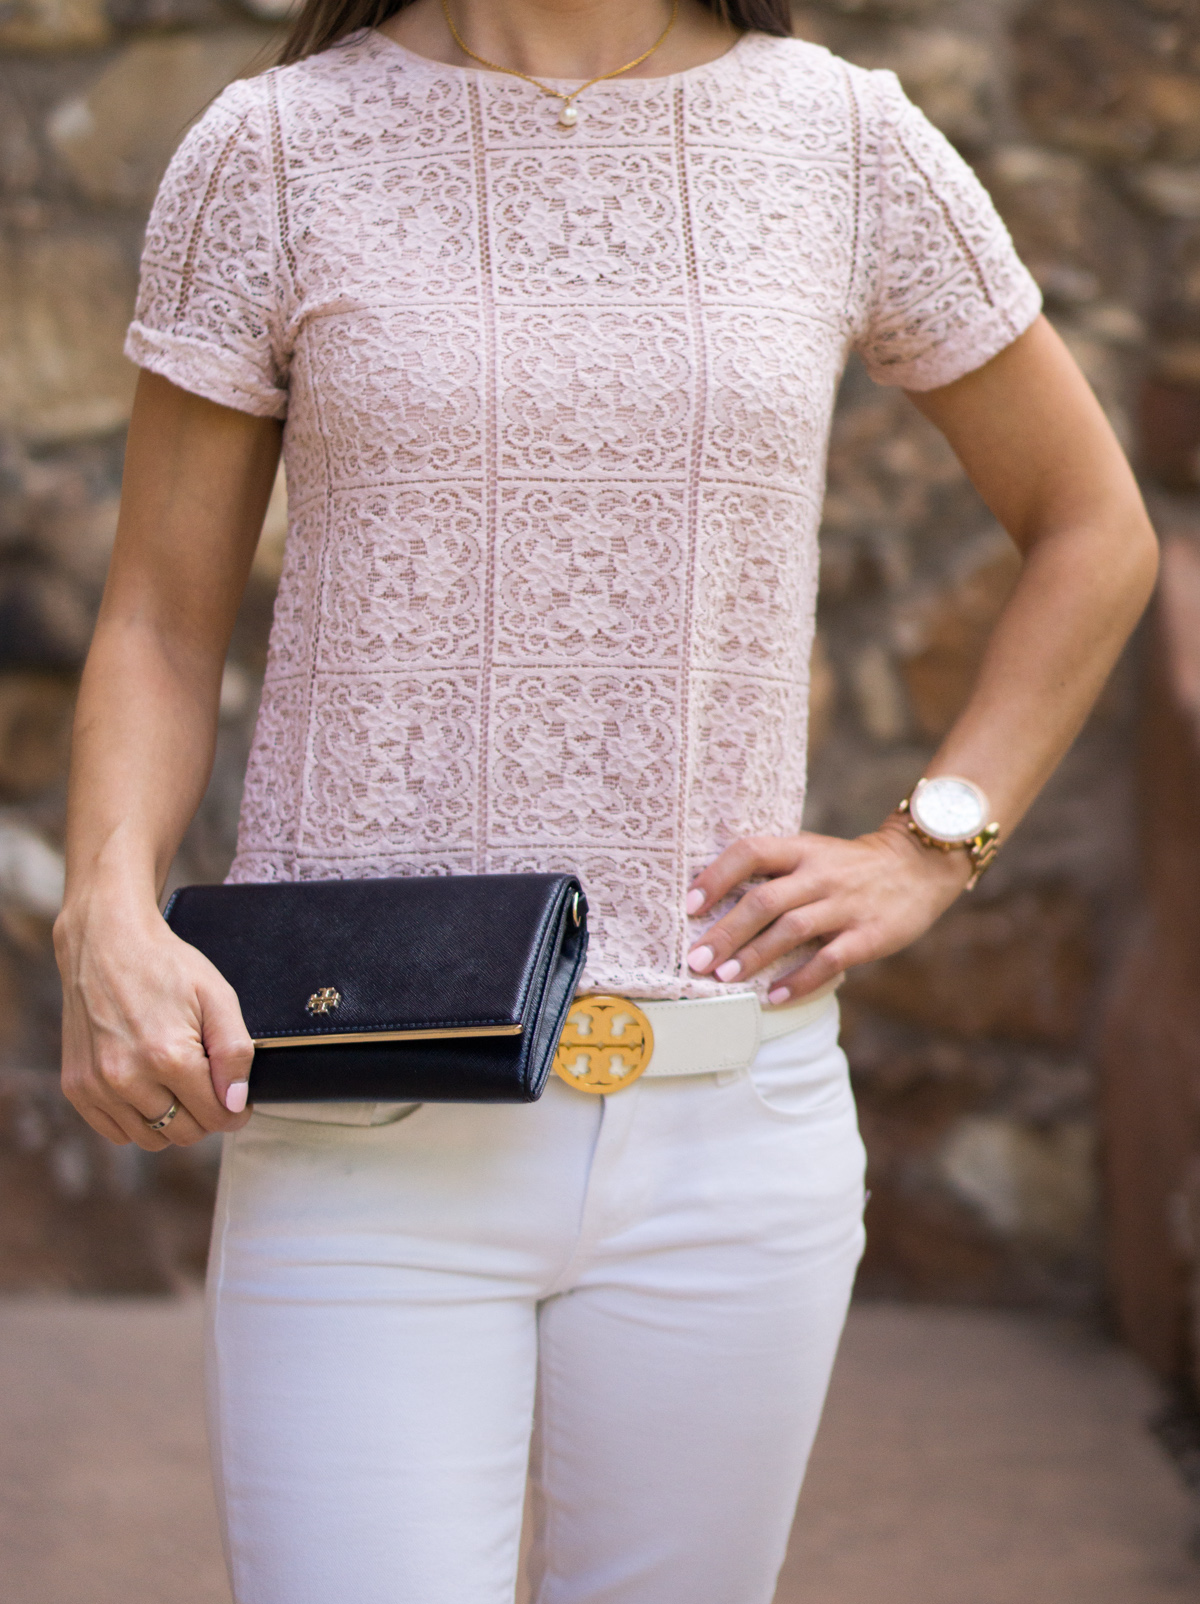 3 Reasons Why a Statement Belt is a Wardrobe Essential | Why I love the Tory Burch Reversible Logo Belt | Petite-friendly belt | Best Belt Review